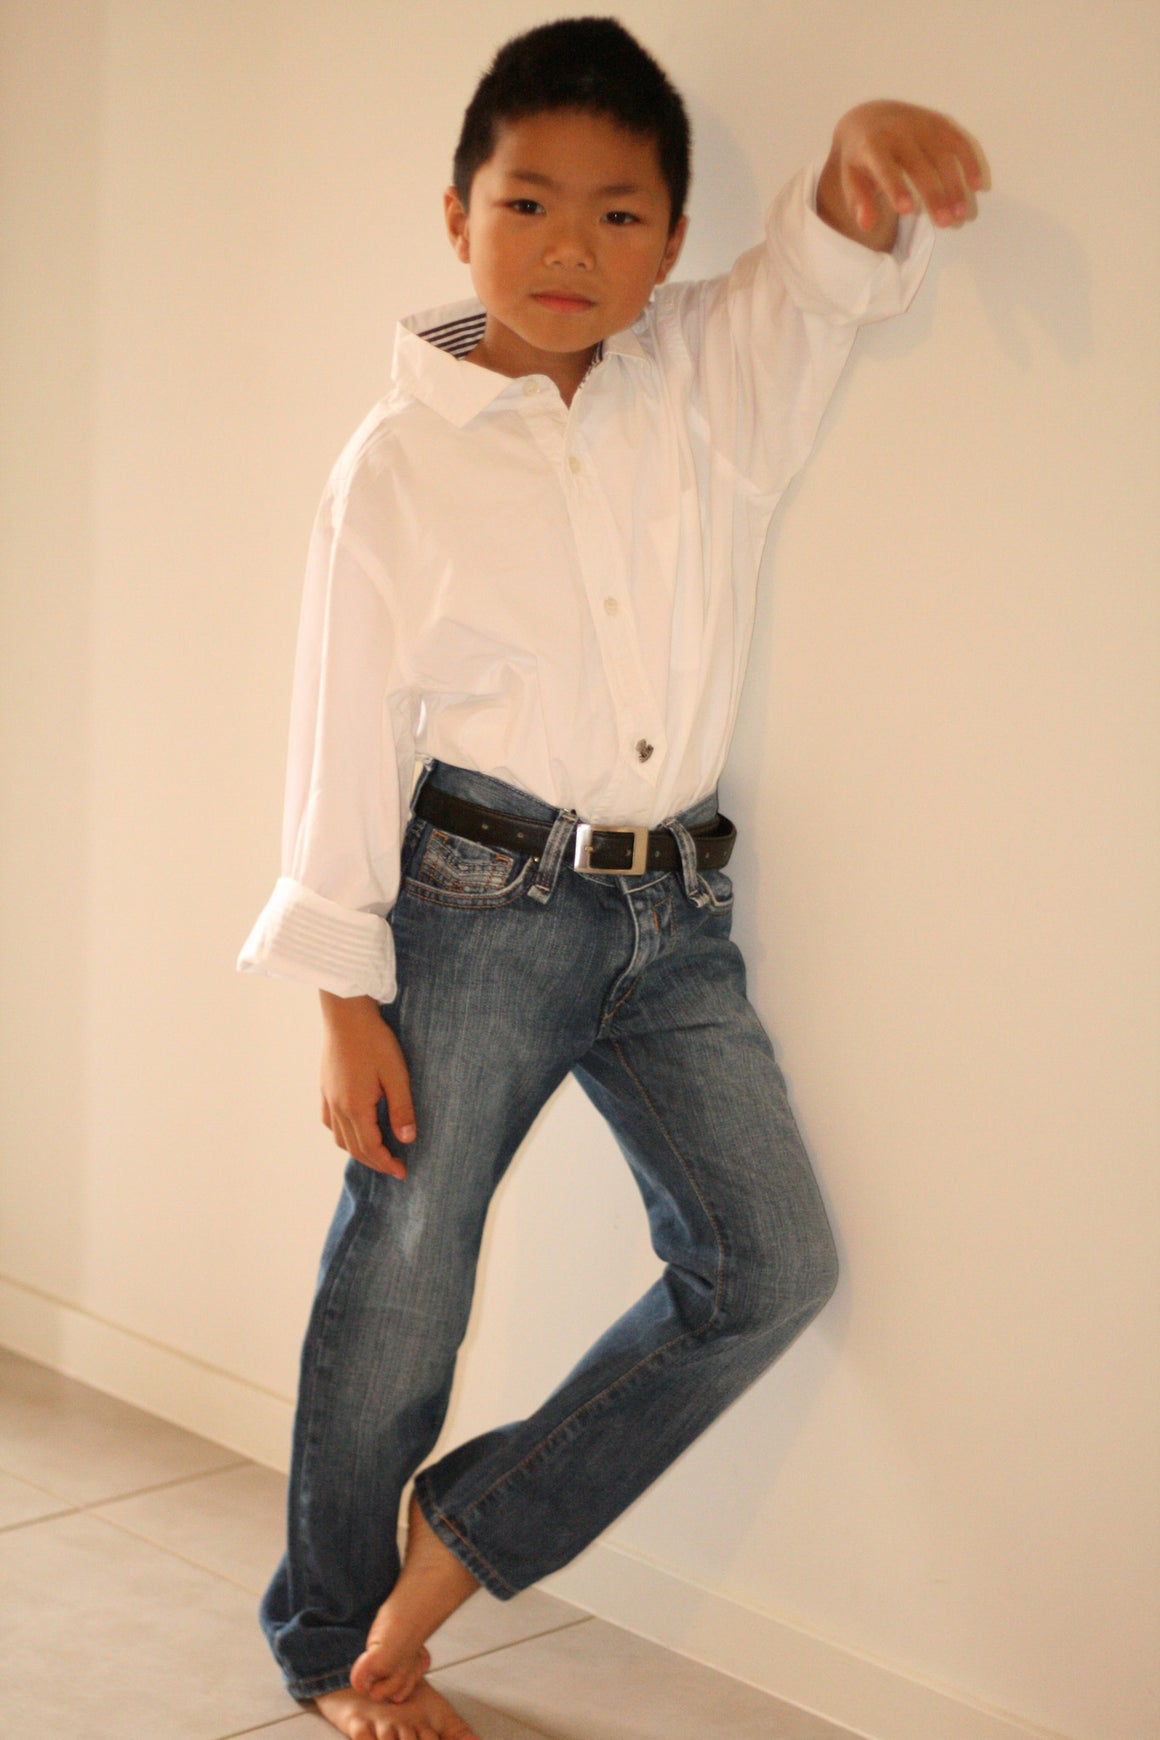 Replay & Sons - Boys White Shirt & Jeans(Sold Separately) | Product | Bon Bon Tresor